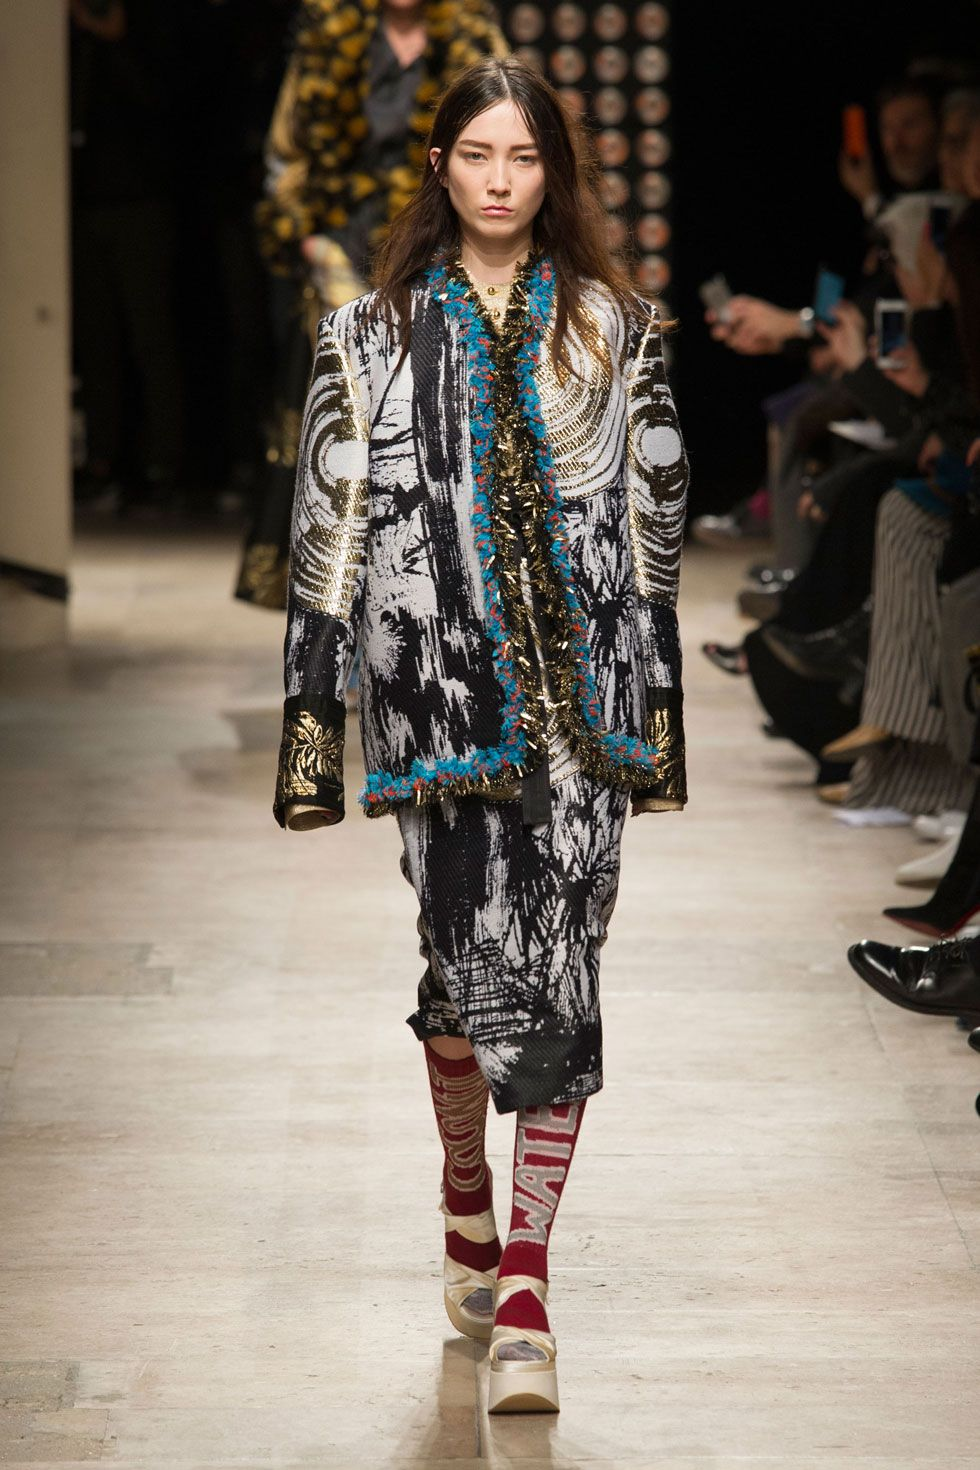 All the Looks From the Vivienne Westwood Fall 2016 Ready-to-Wear Show